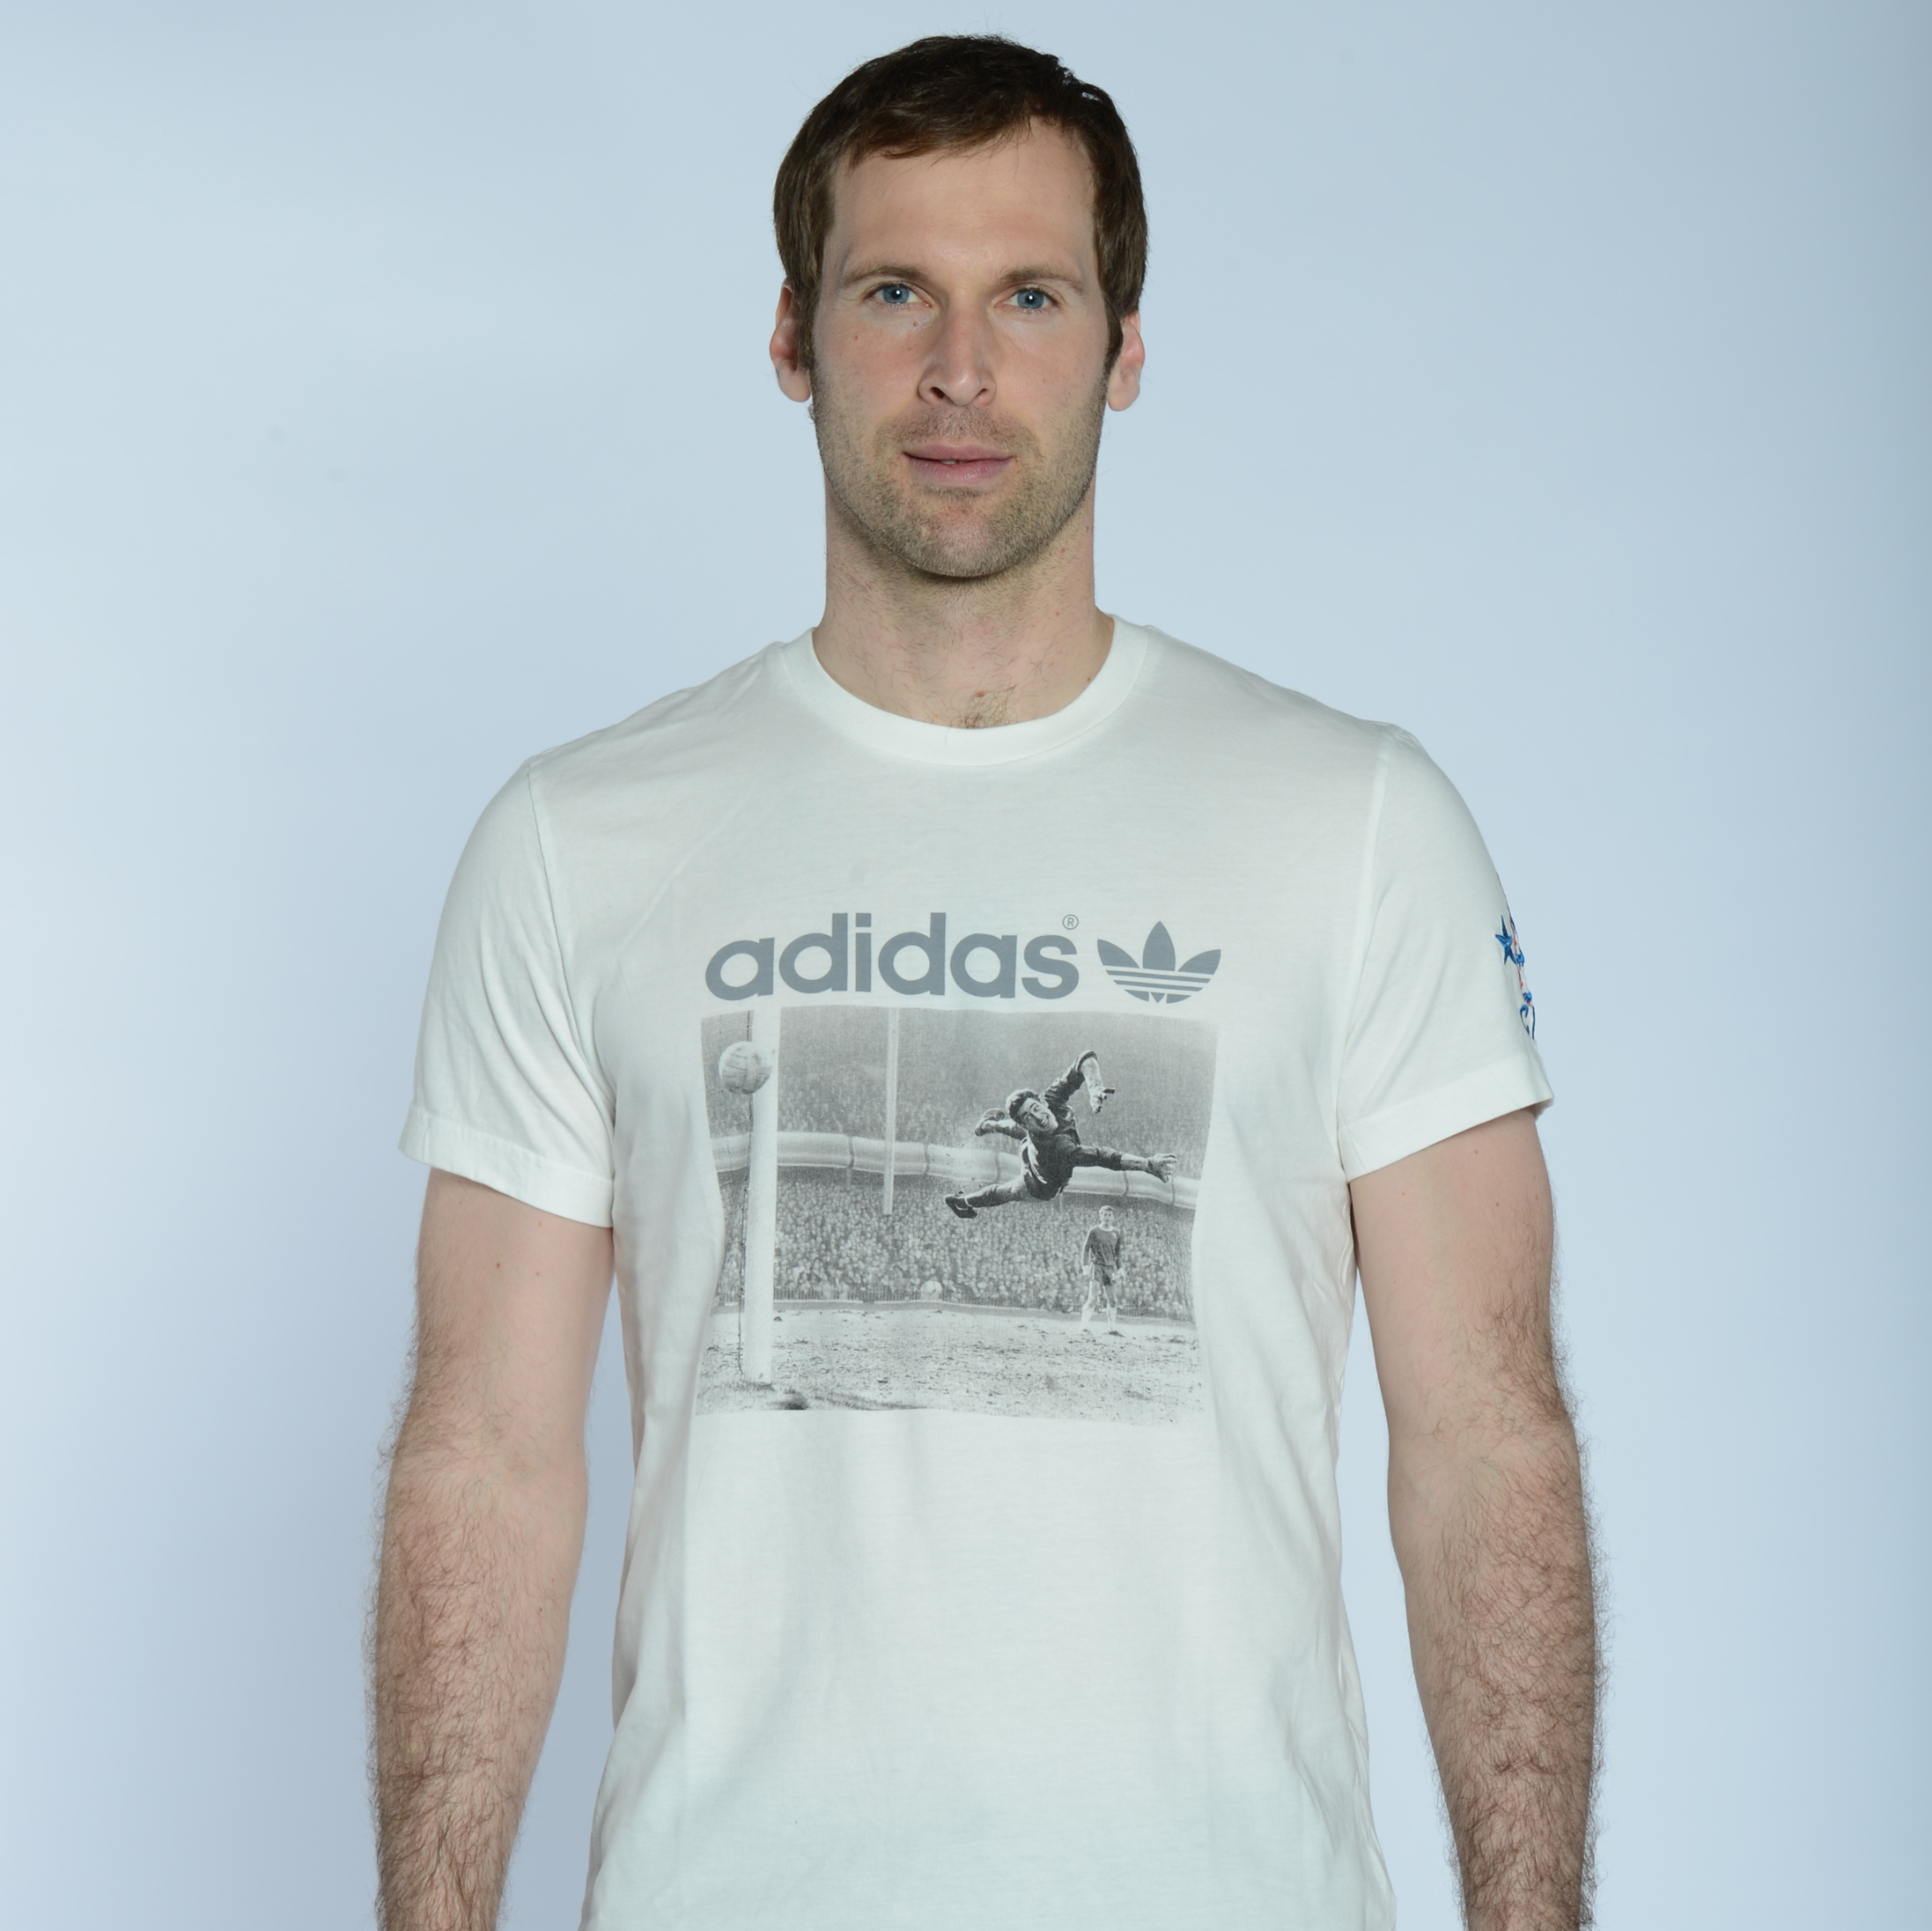 adidas Originals Chelsea Graphic T-Shirt - White Vapour